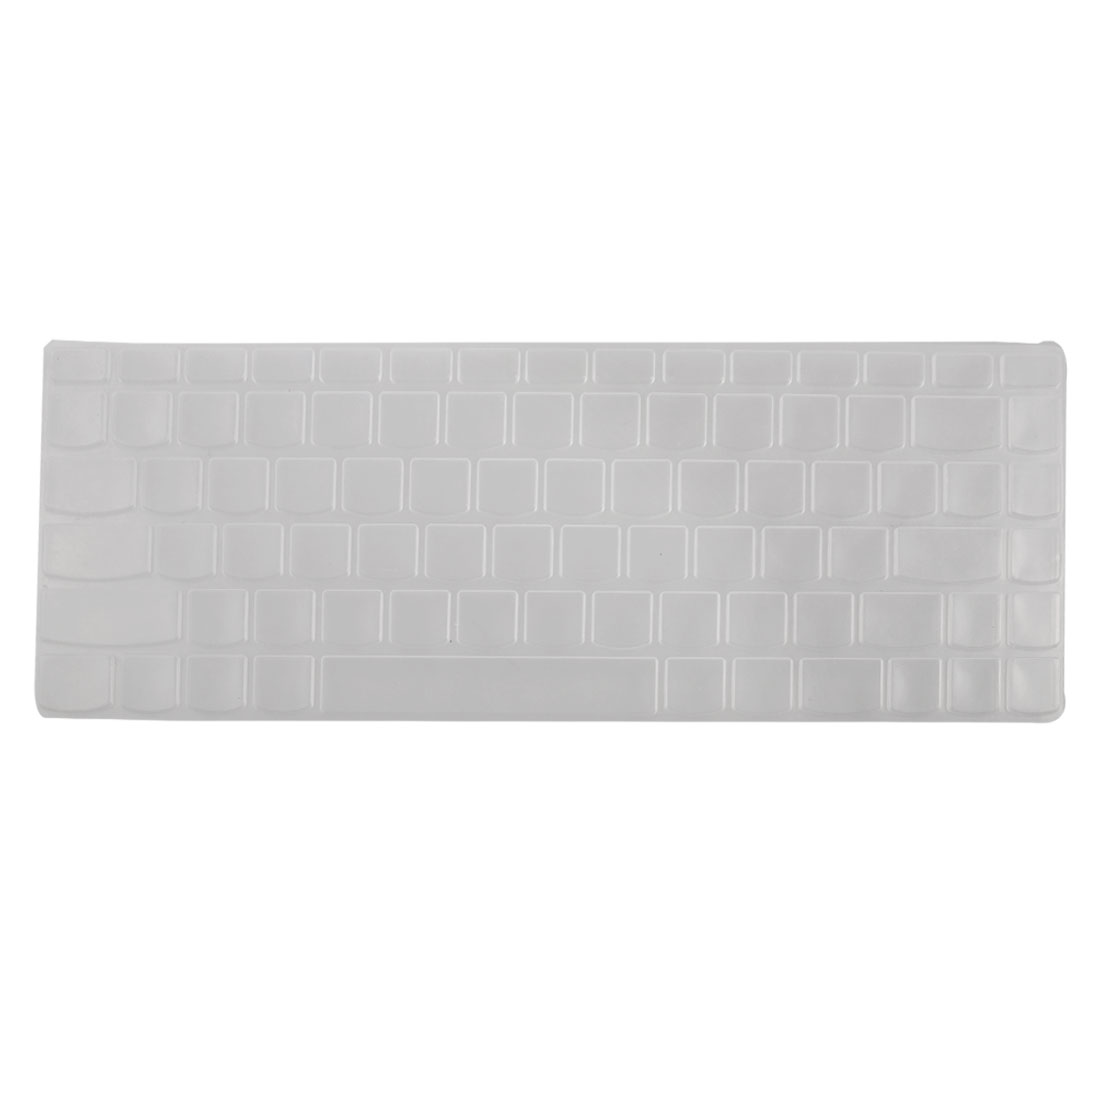 Clear White Keyboard Protect Silicone Skin Cover for Lenovo Z460 Z465 Z360